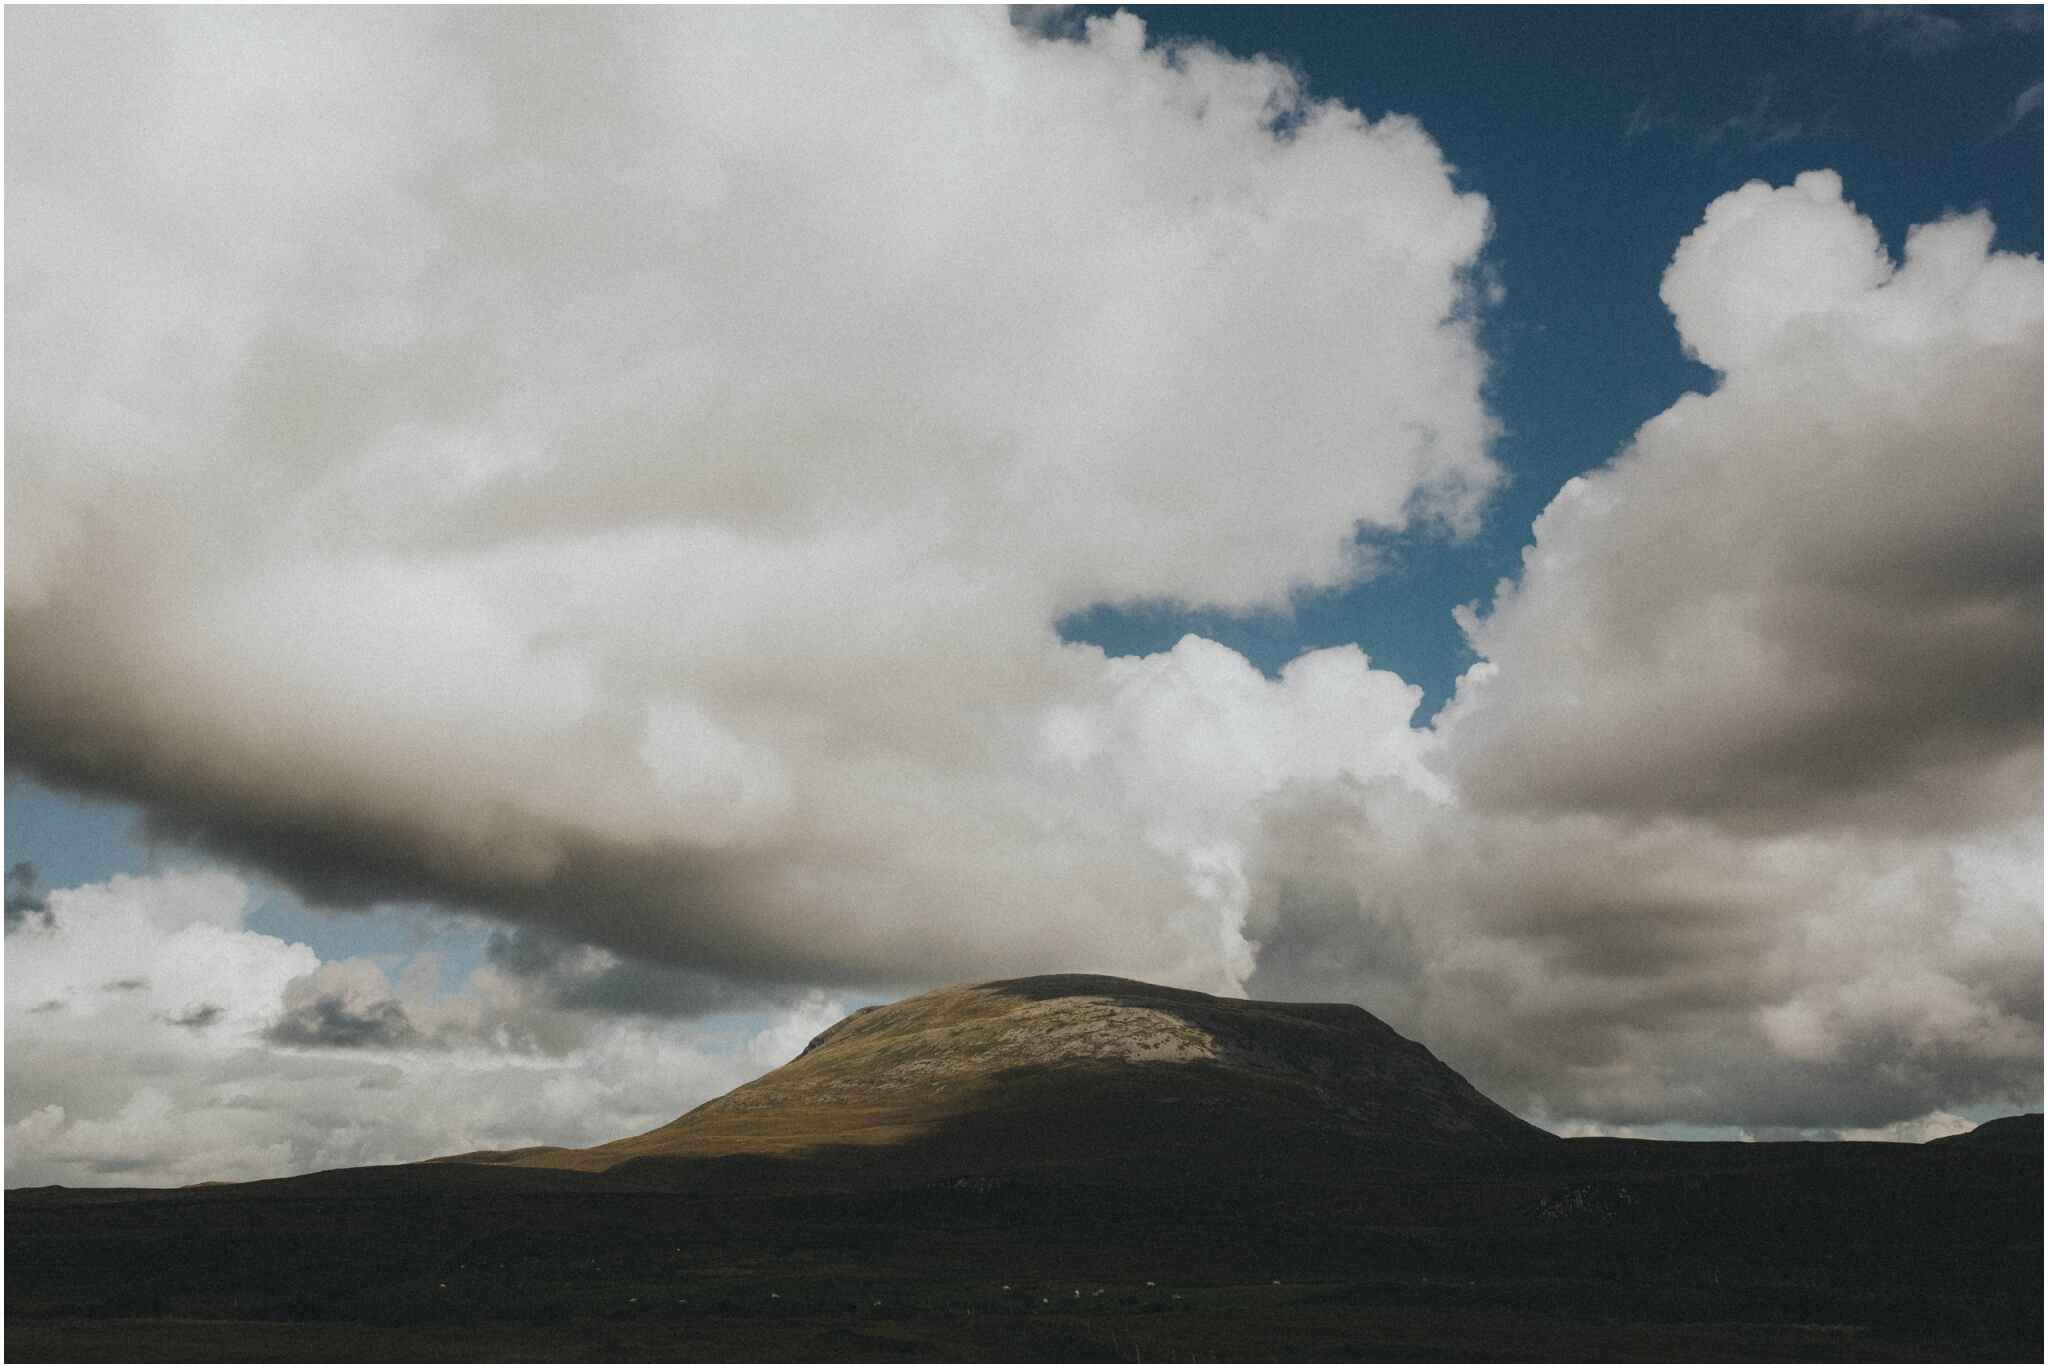 Rachel + David - Hiking Elopement in Muckish Mountain and Poisoned Glen, Donegal 2